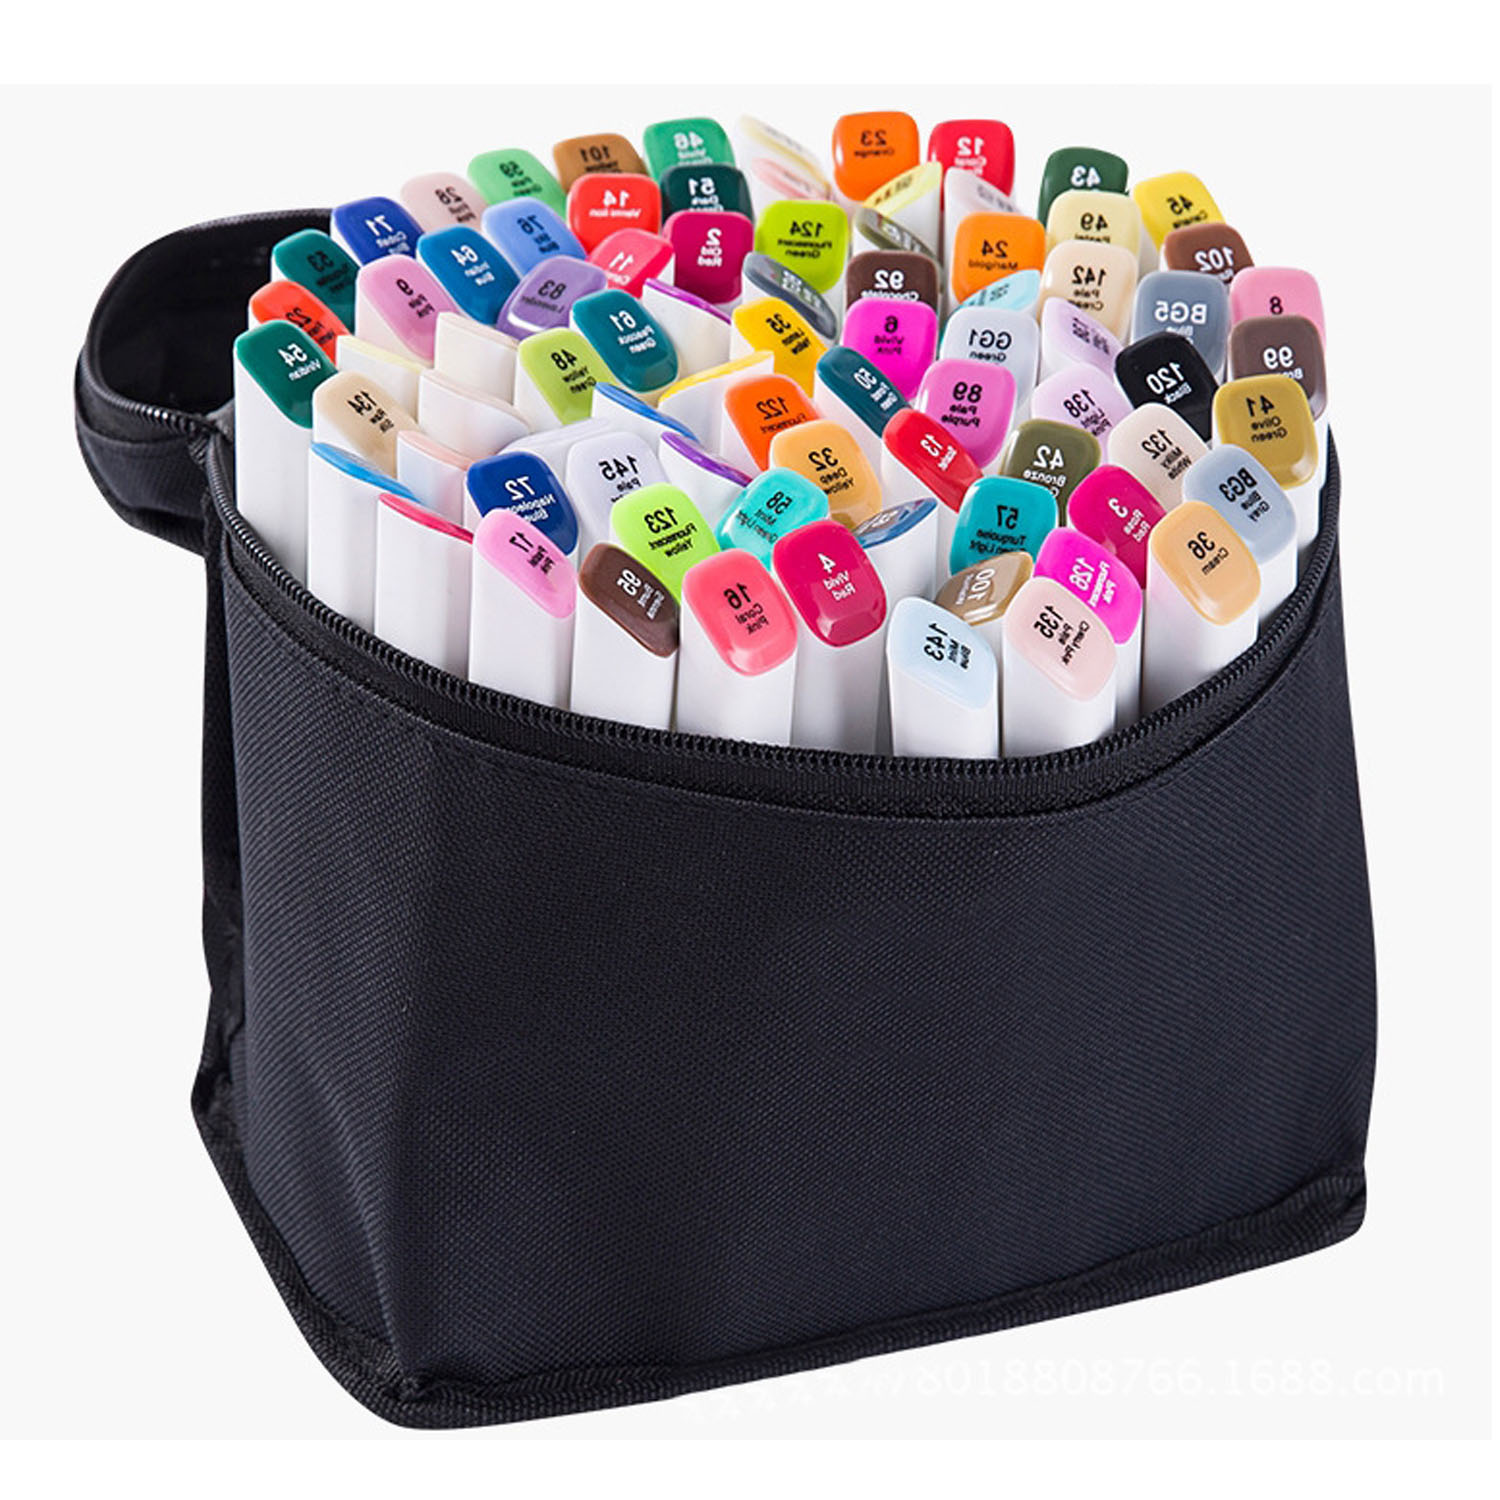 80 PCS Assorted Color Dual Tips Paint Art Sketch Twin Marker Pen Alcohol Based Ink for Art Crafting Poster Coloring Highlighting comby alcohol based twin art permanent marker pen color suit with free case